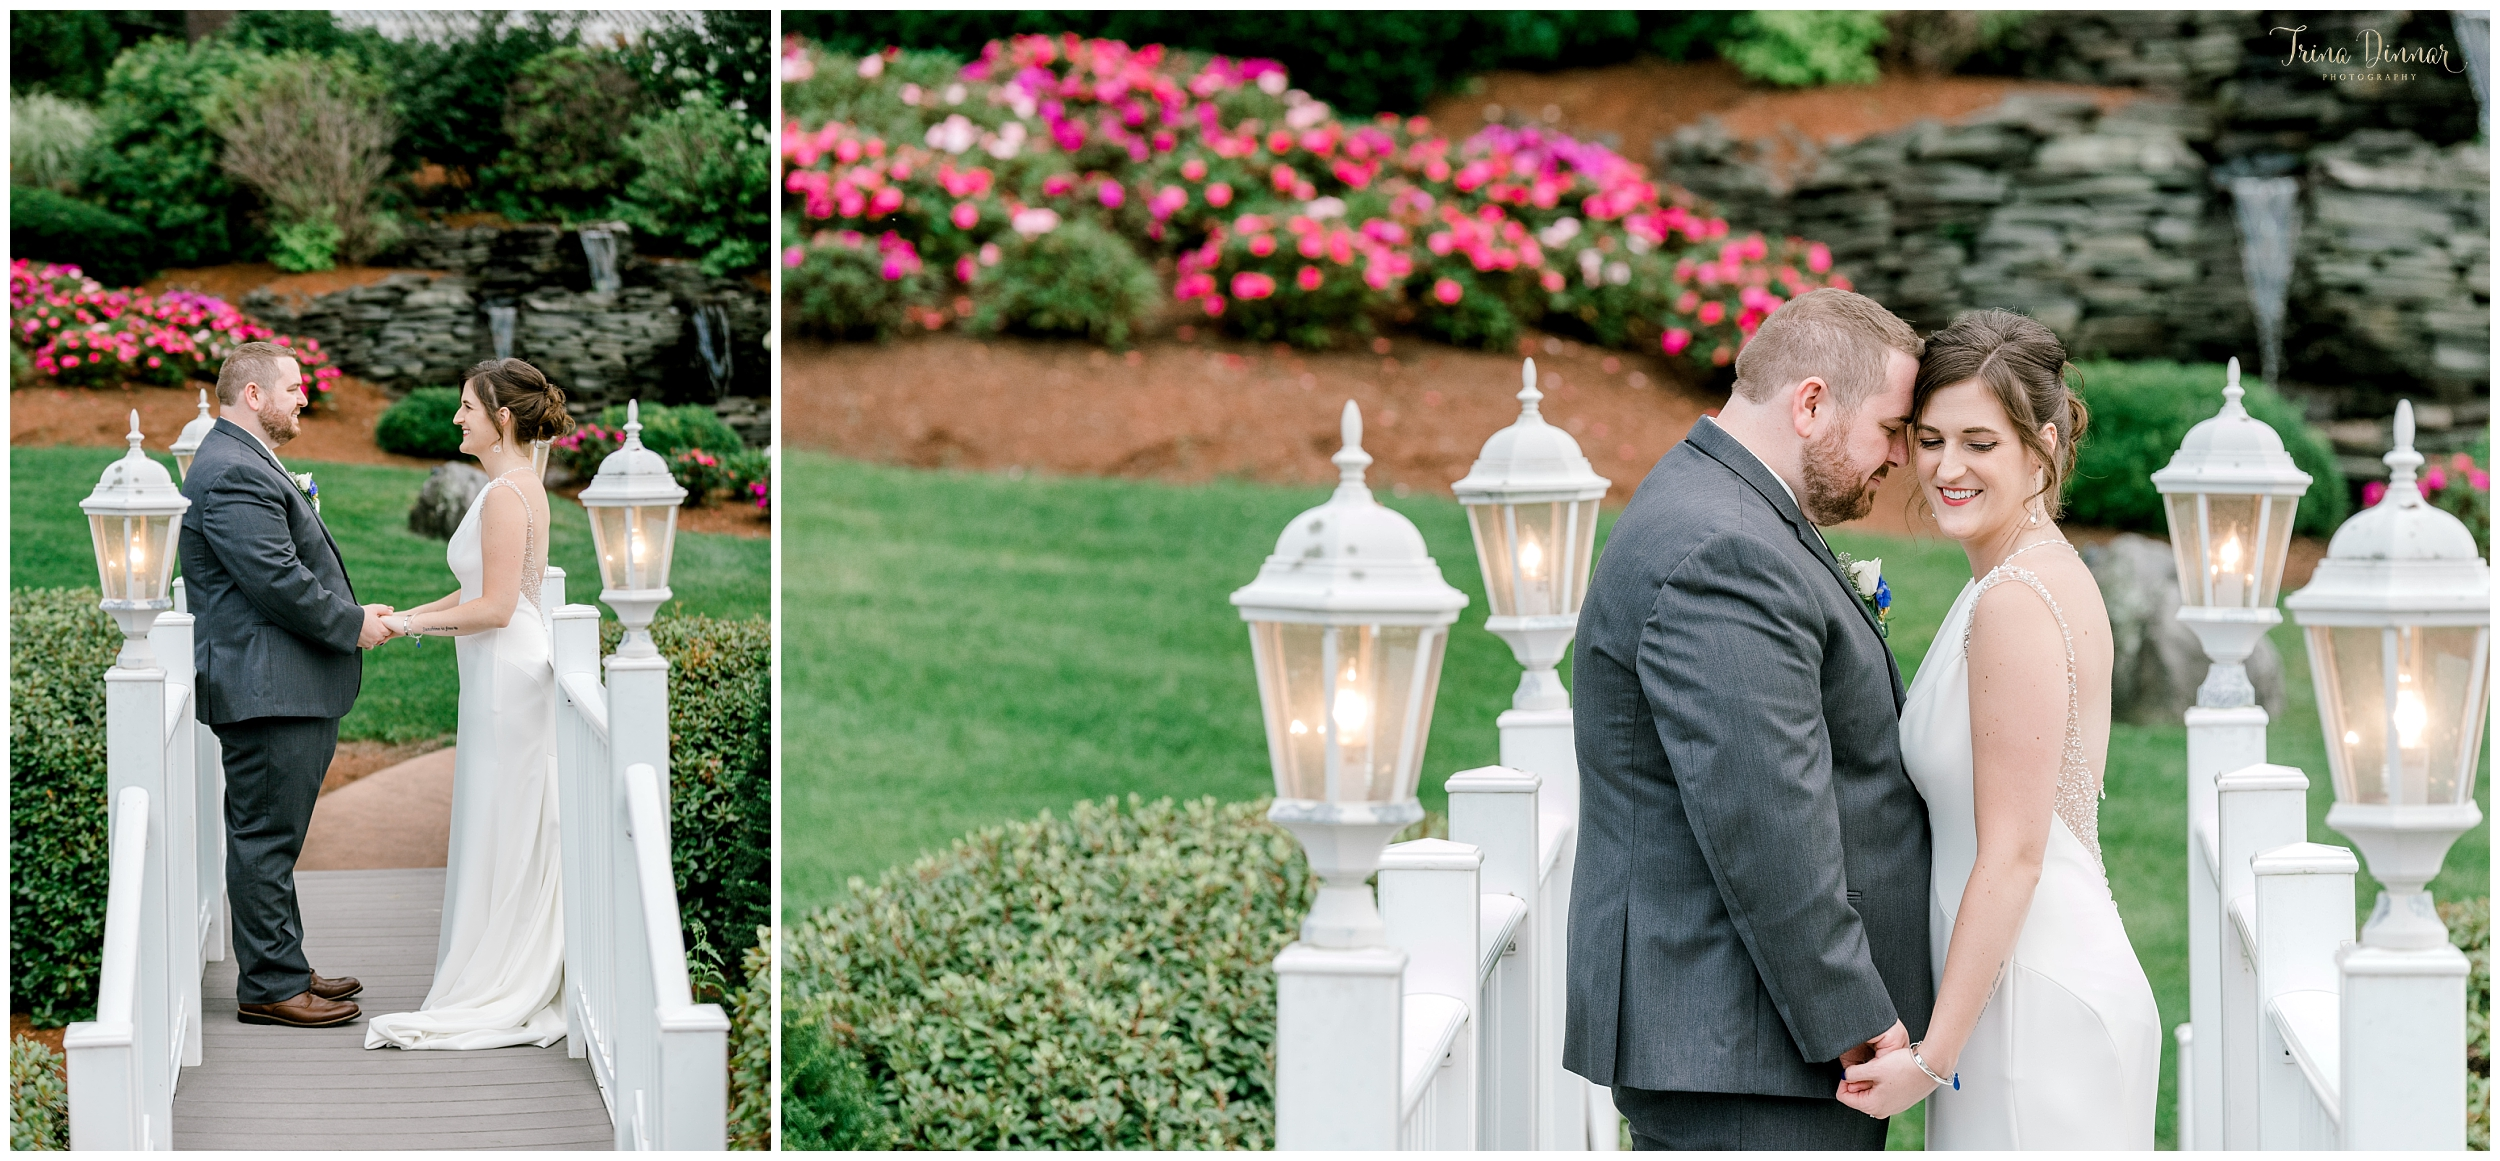 New Hampshire Wedding Photographer at the Castleton photographs Bride and Groom